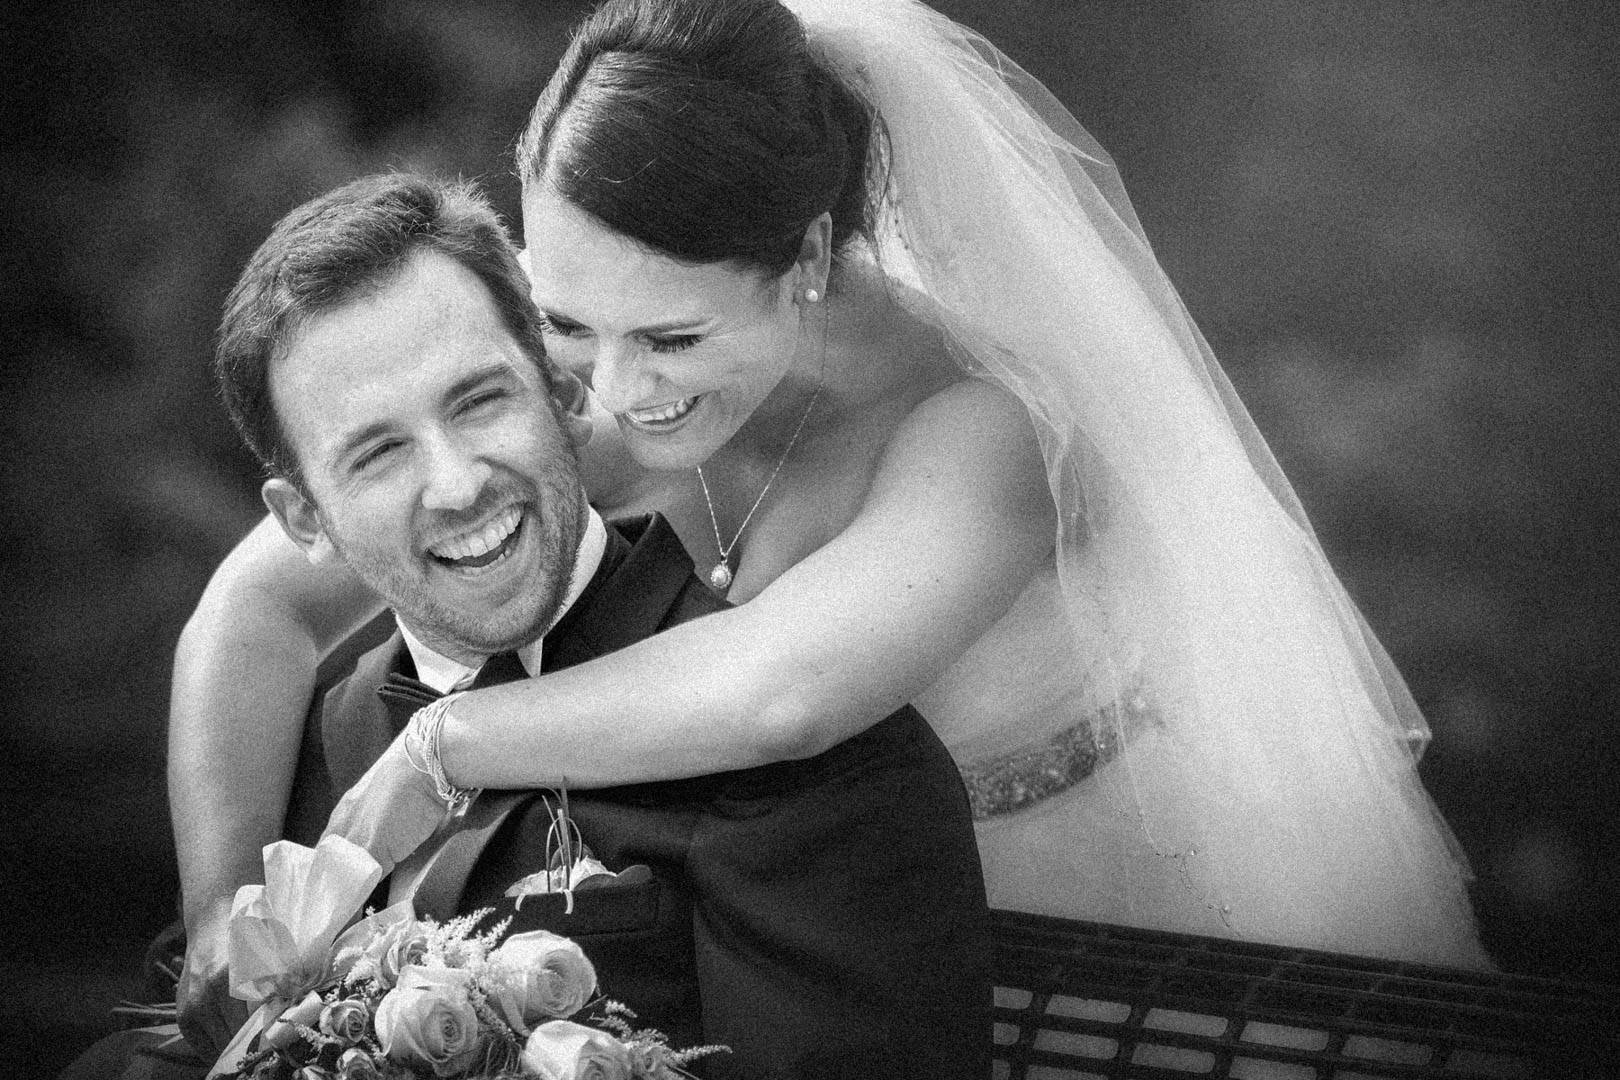 Bride and groom smiling together at their wedding